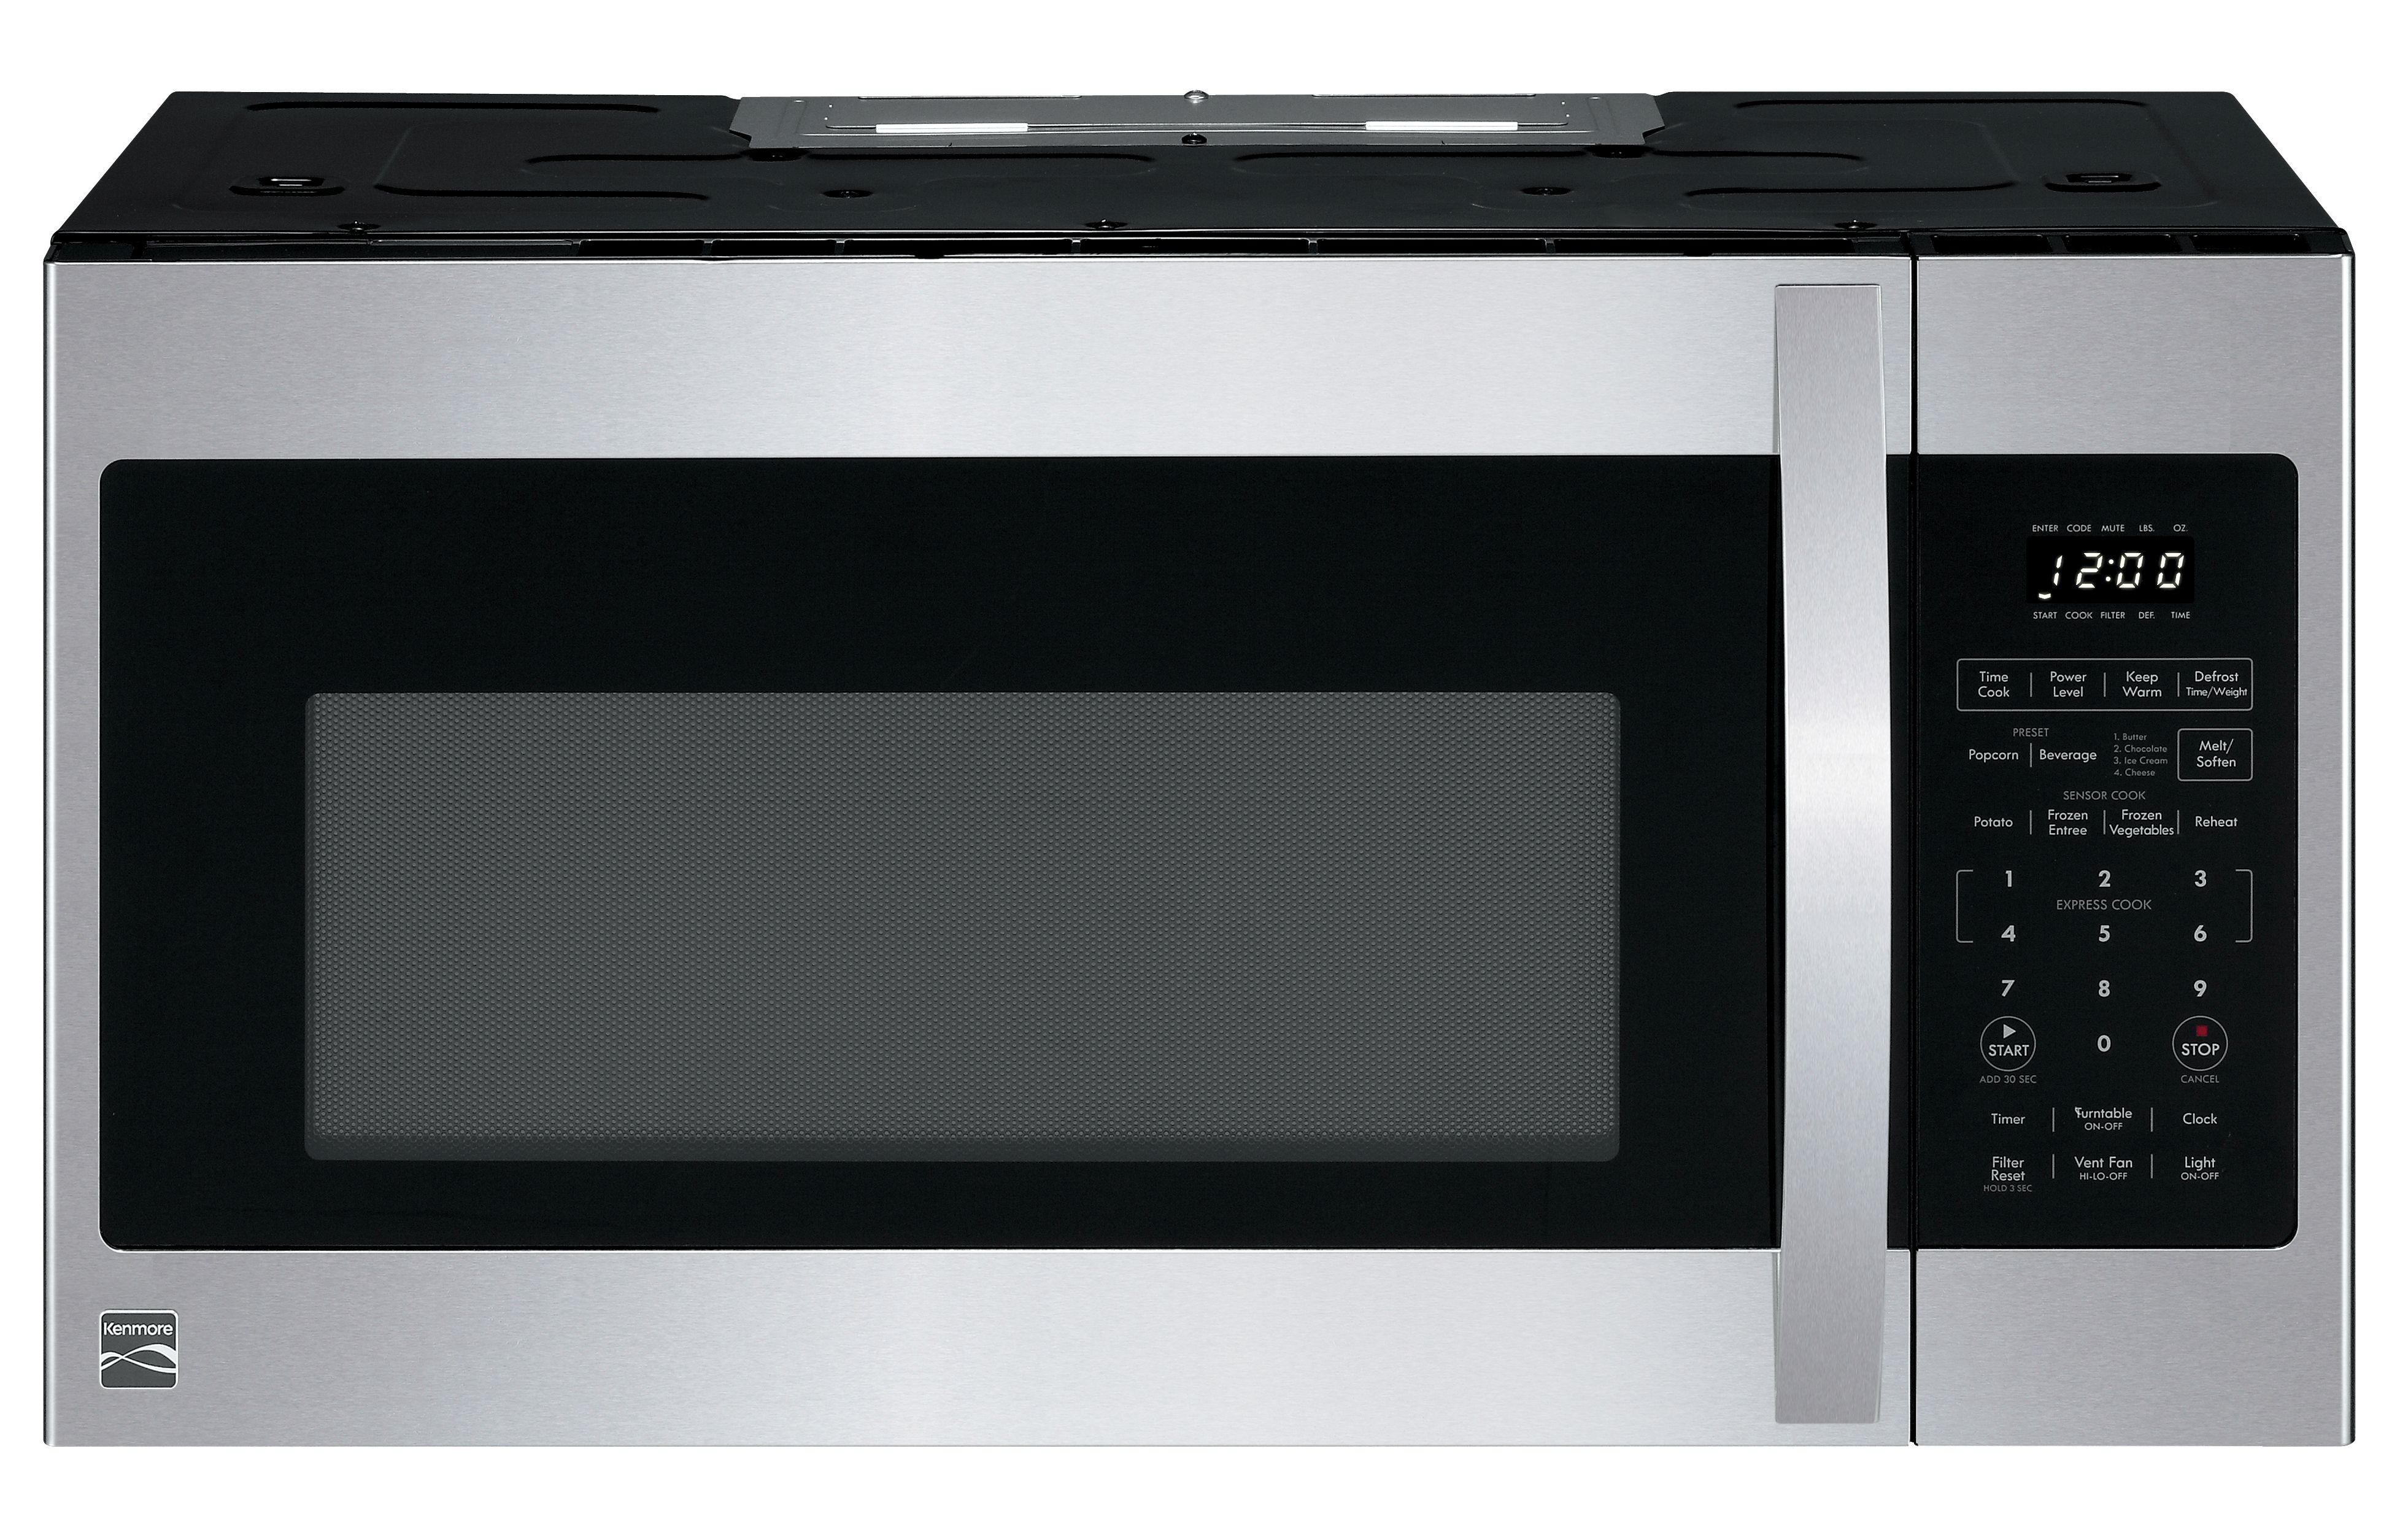 kenmore elite 87587 2 2 cu ft over the range microwave oven black stainless